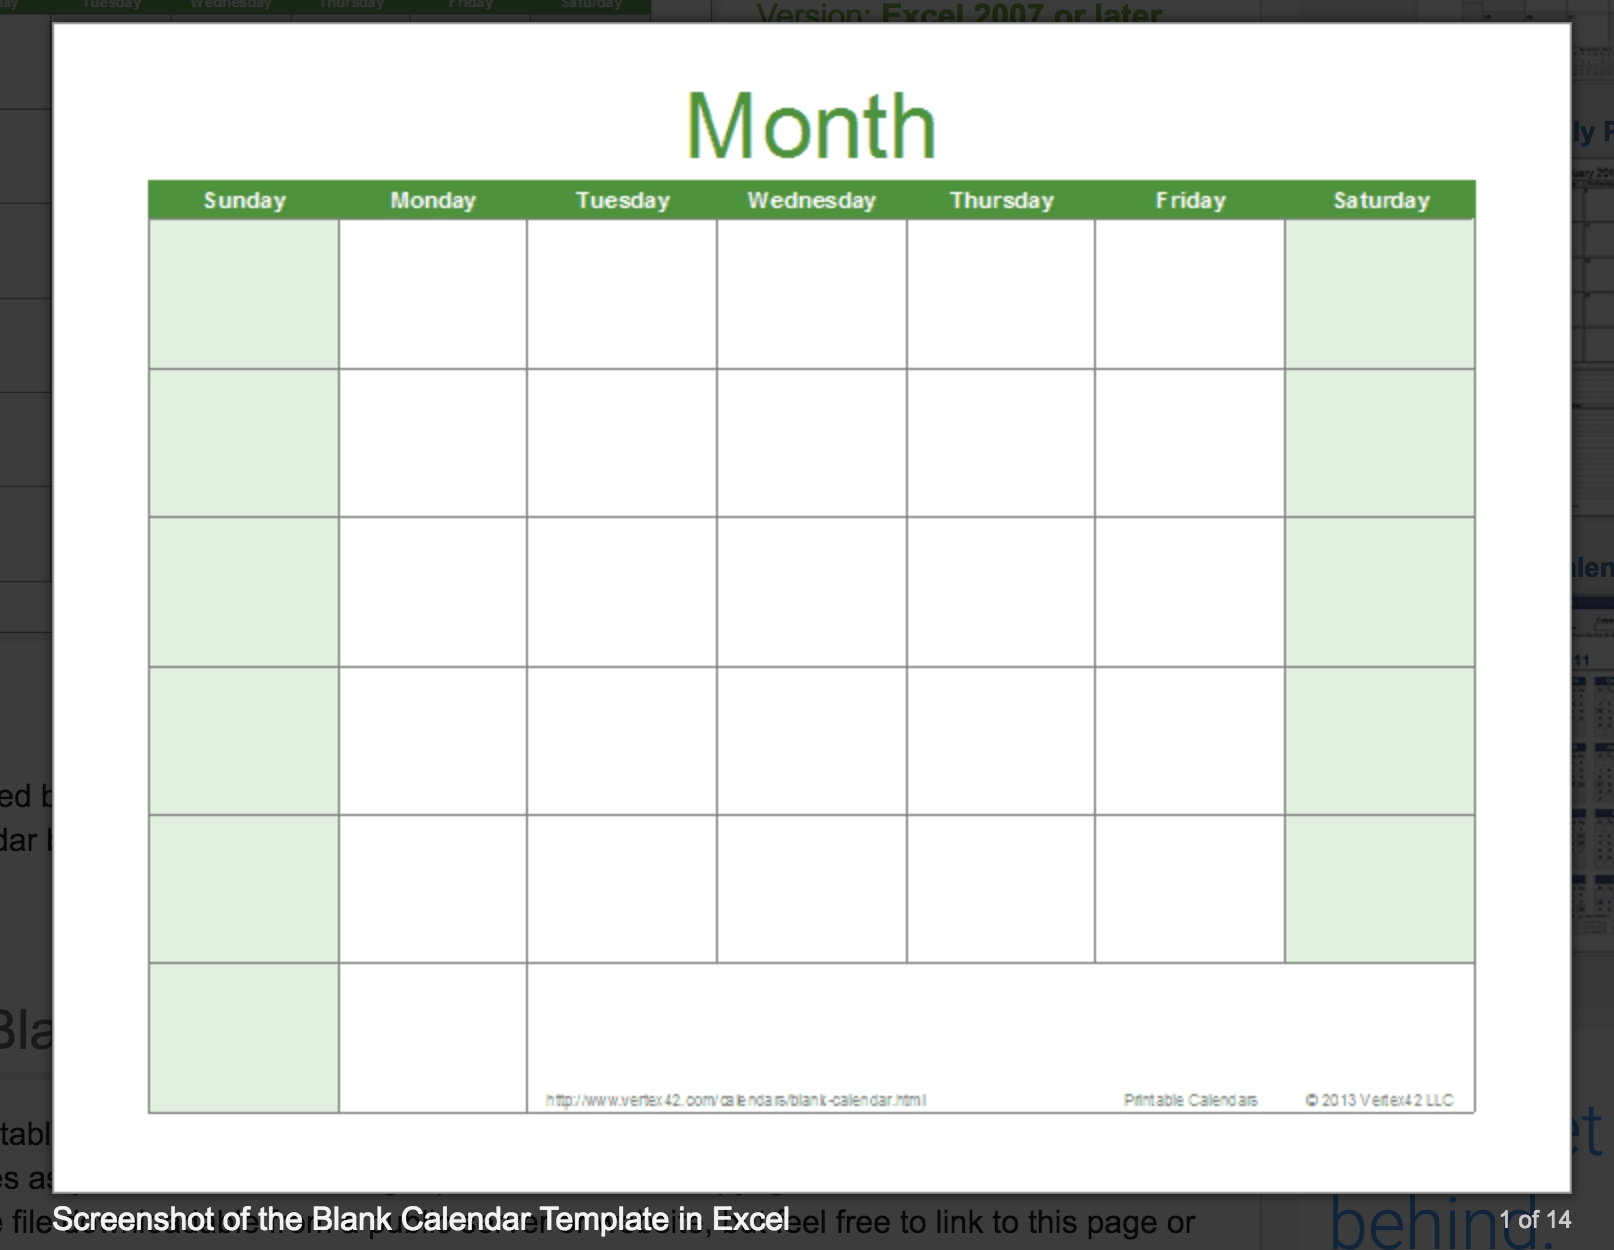 Blank Calendar: Wonderfully Printable 2019 Templates with Free Blank Calendars By Month